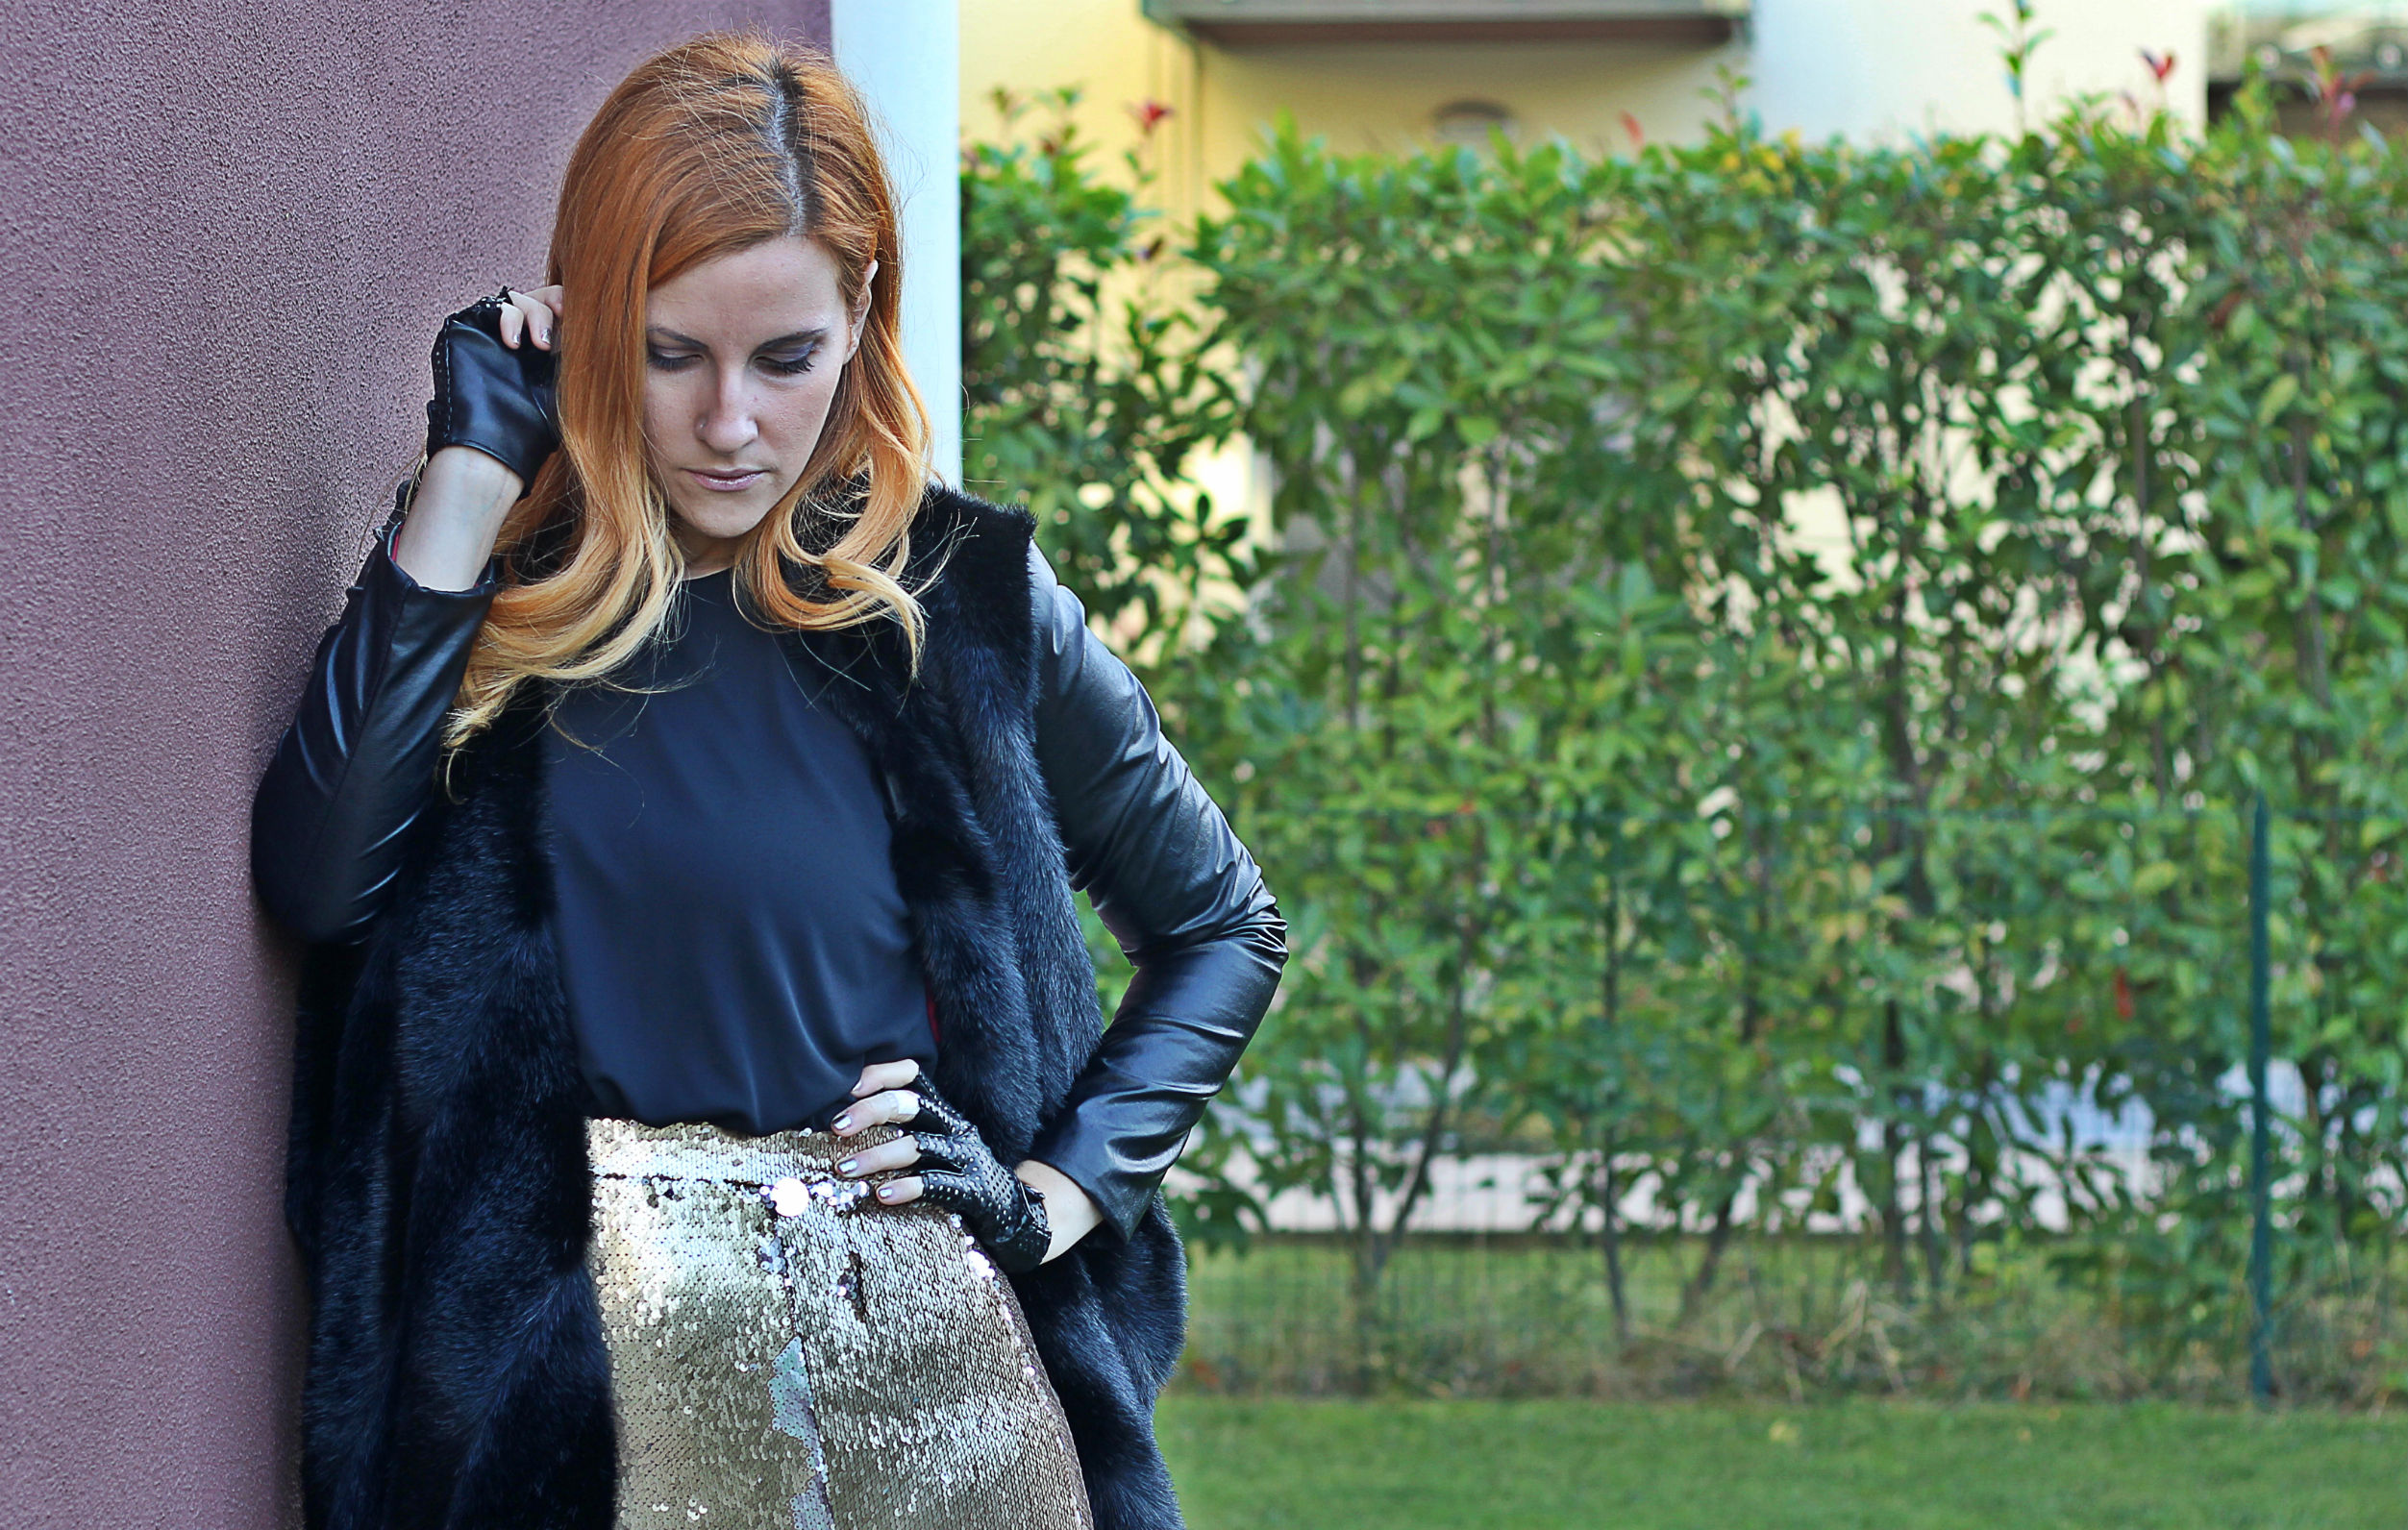 elisabetta bertolini total look tuwe - fashion blogger italia - top fashion blogger evento Dior